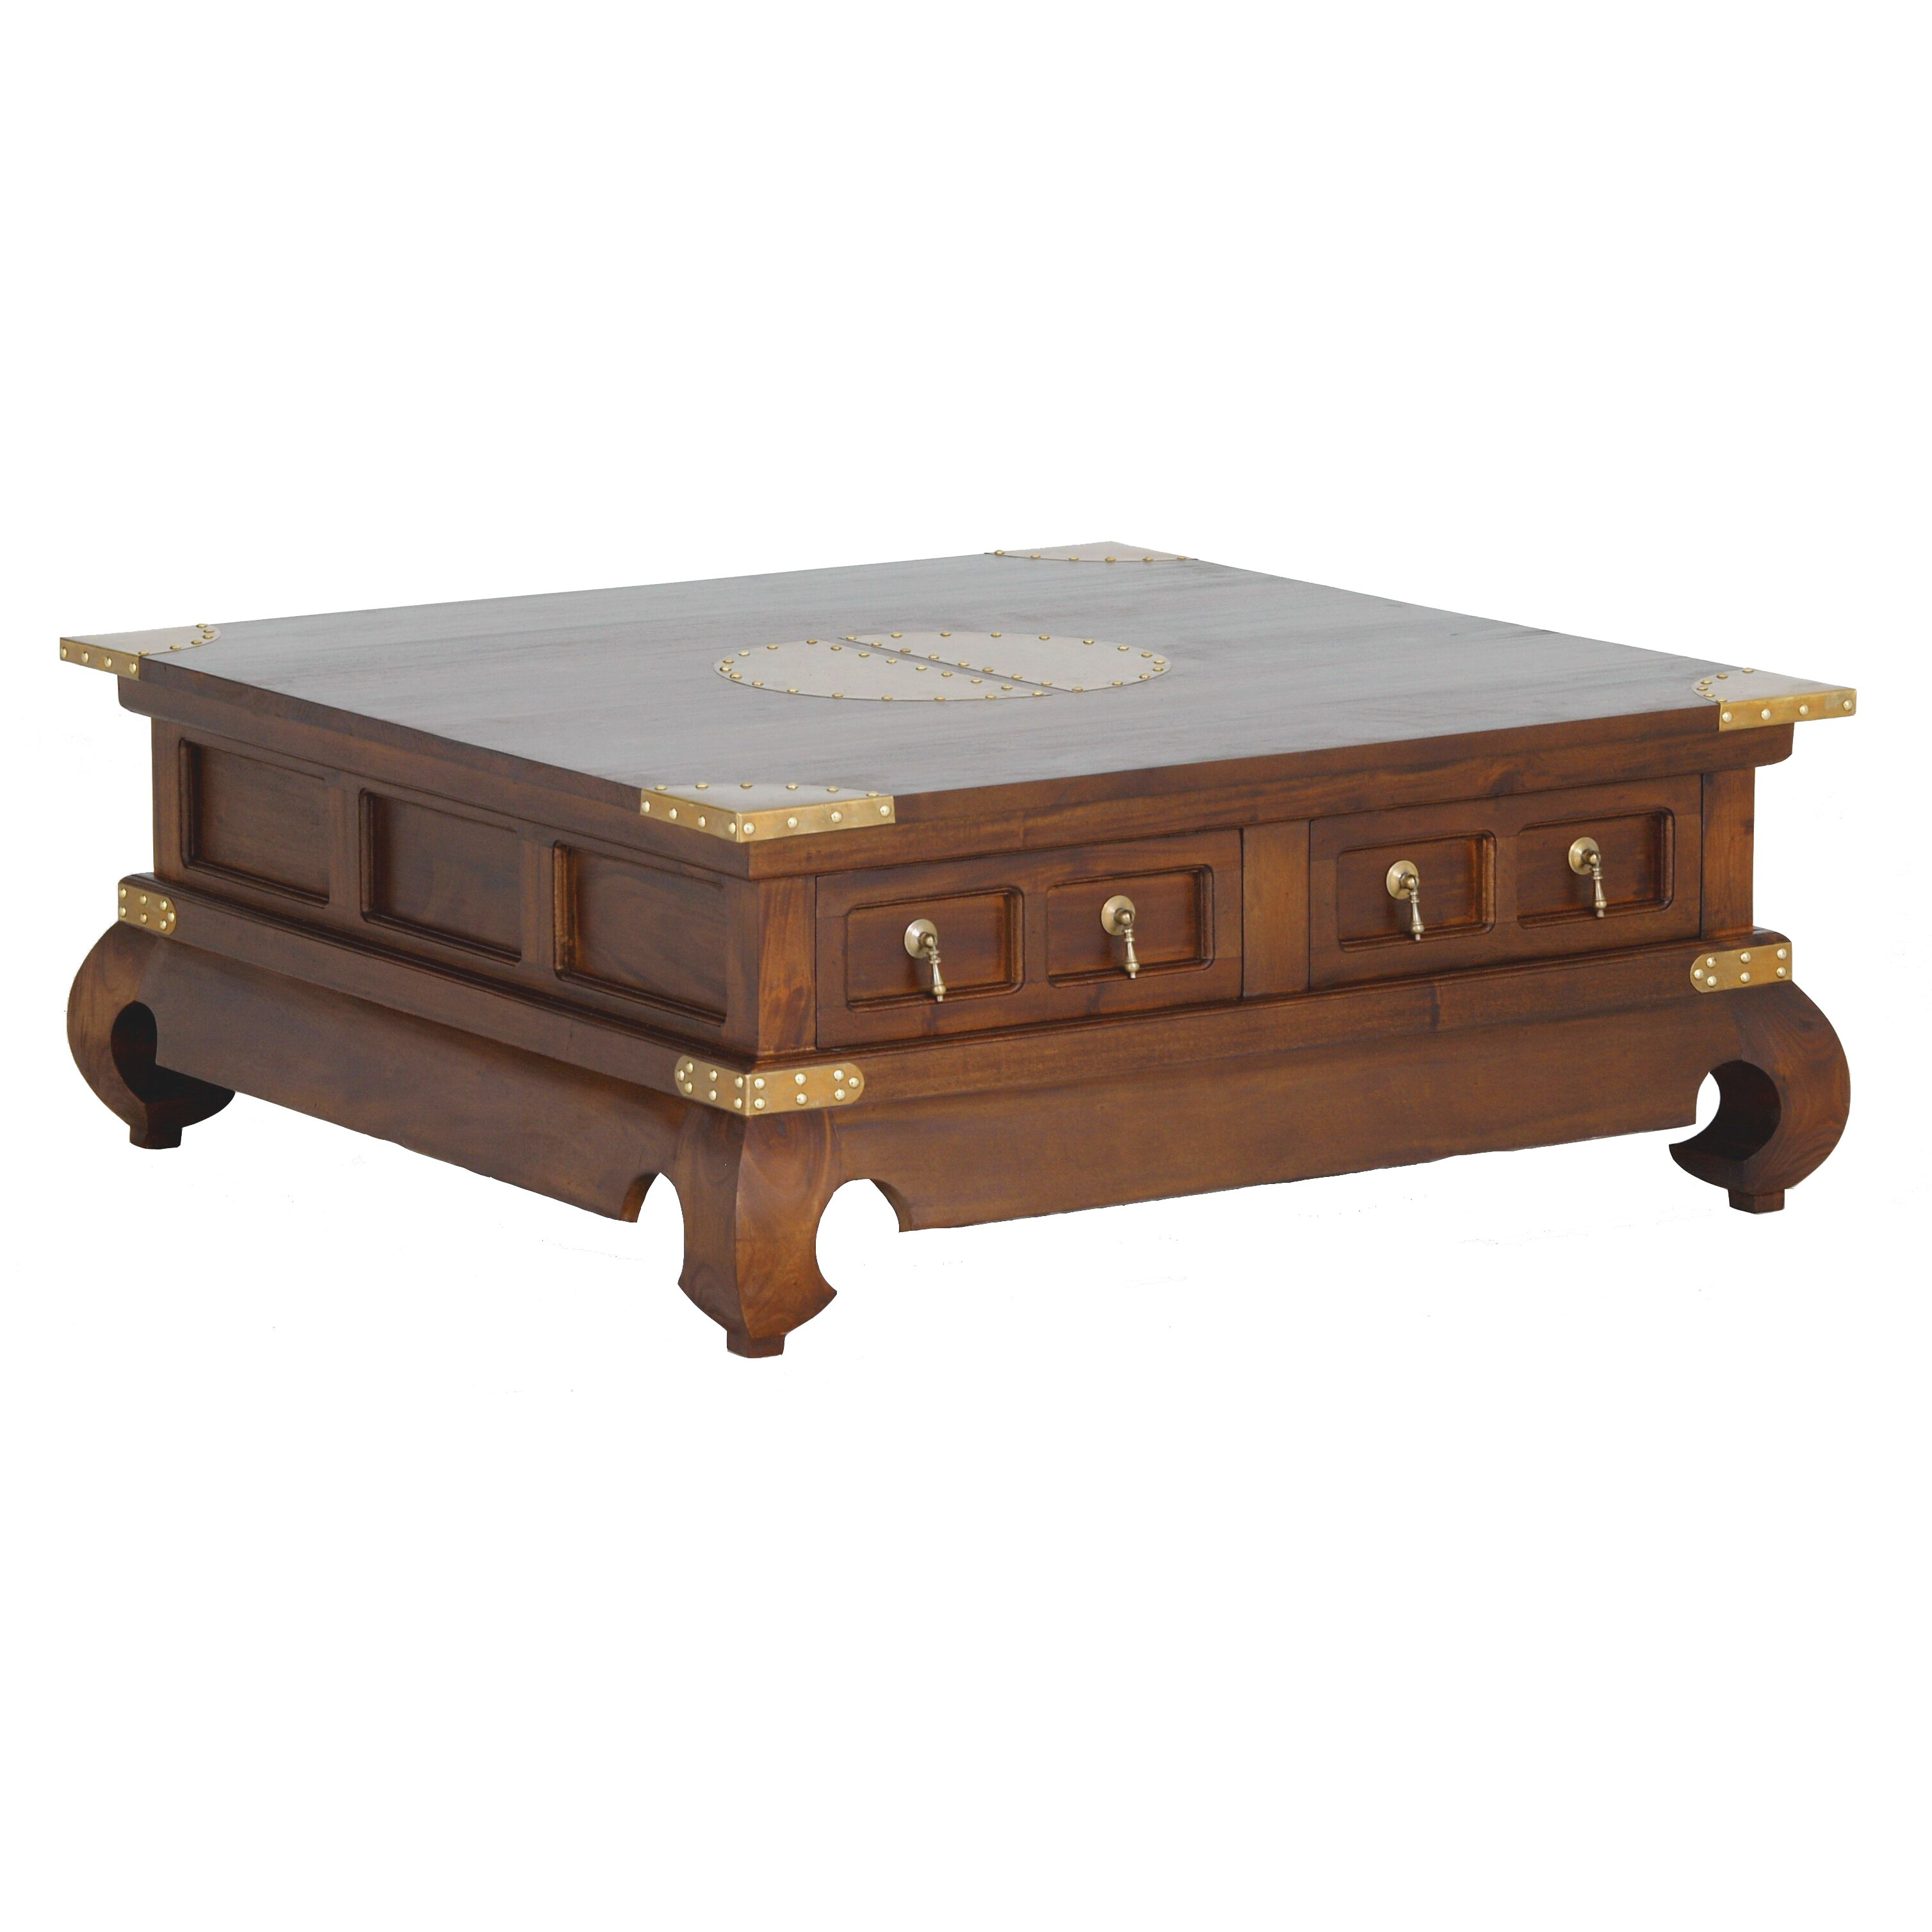 Solid Wood Coffee Table Wayfair: NES Furniture Ming Fine Handcrafted Solid Mahogany Wood